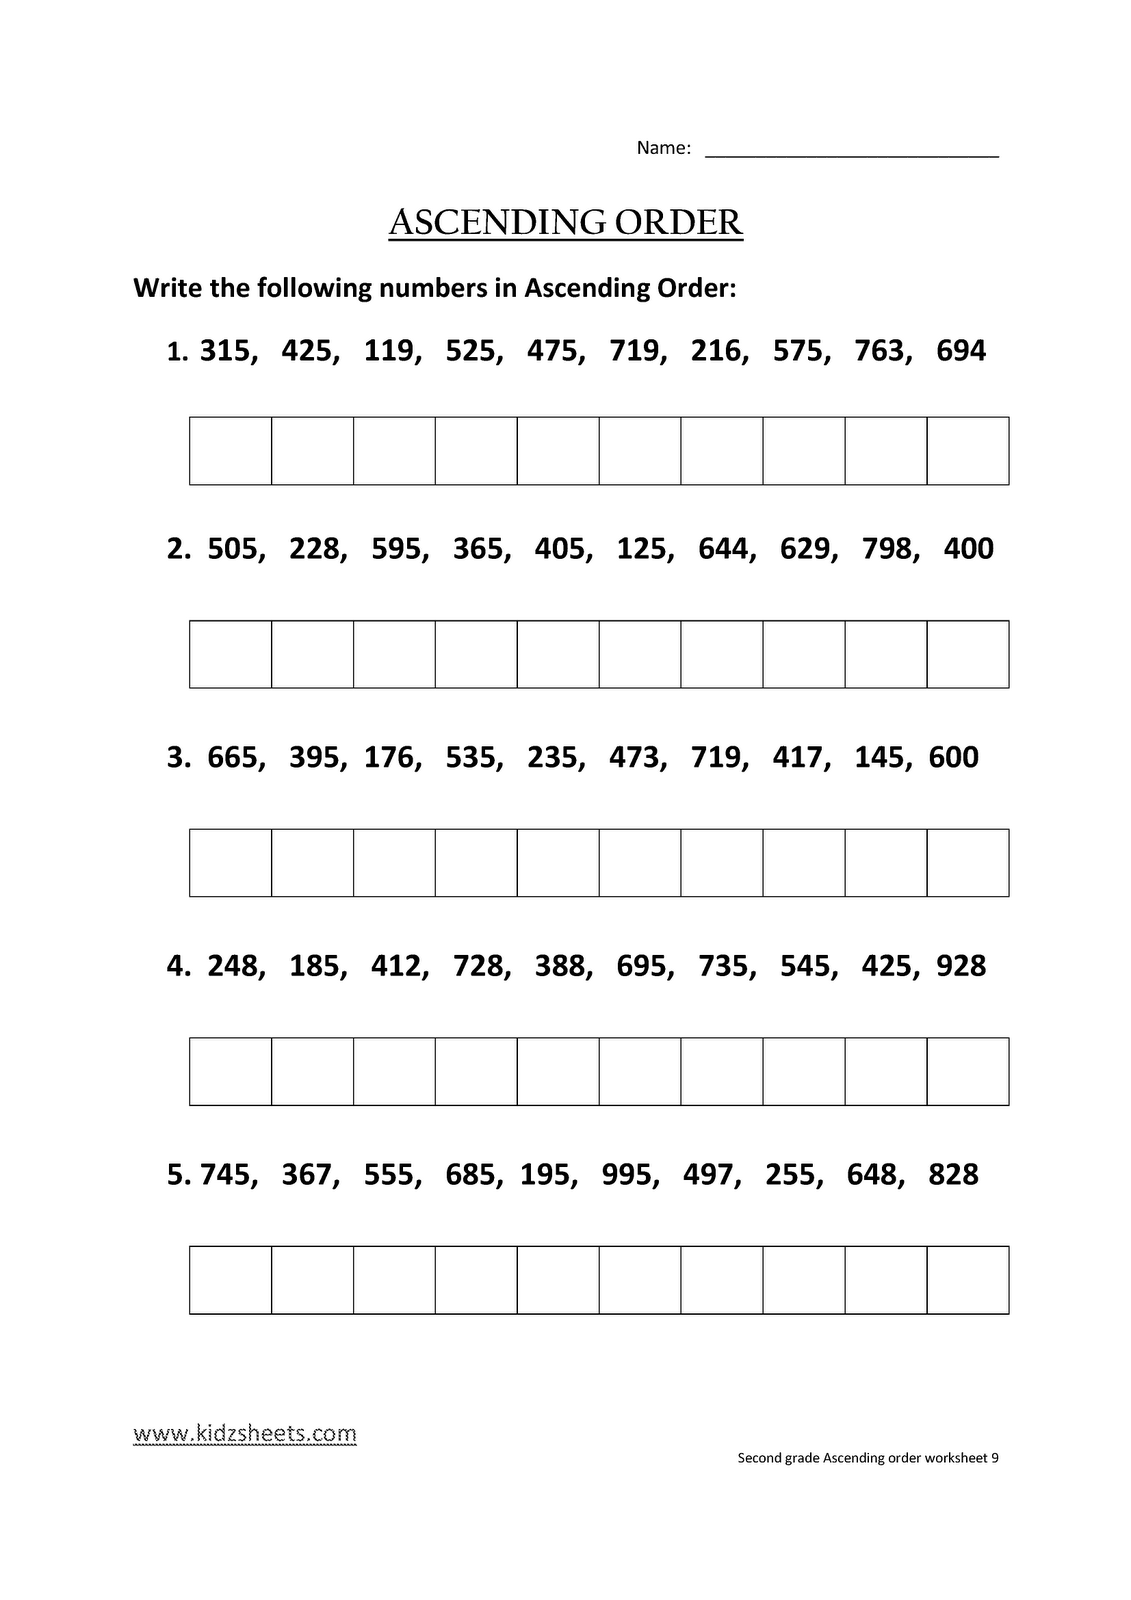 Mixed addition and subtraction worksheets for 2nd grade